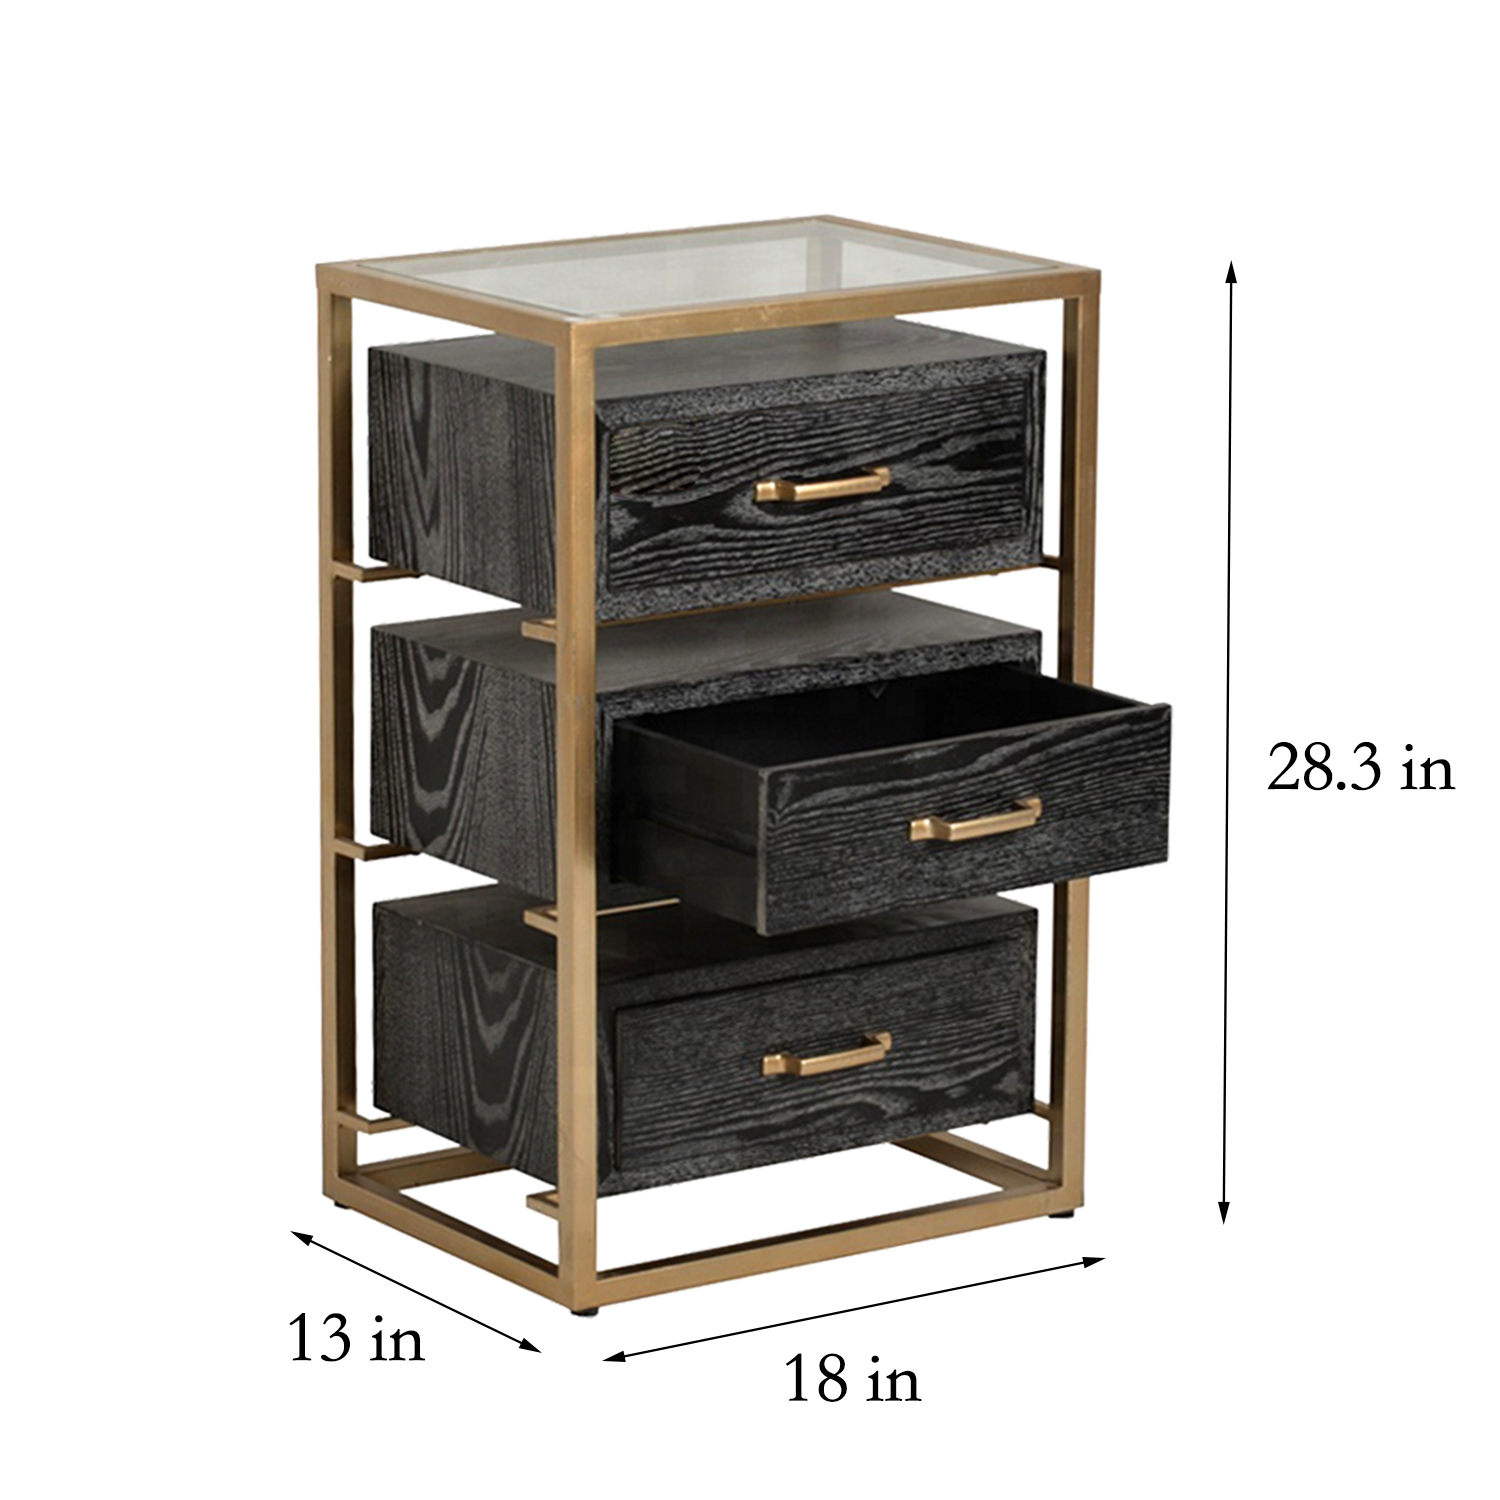 Mayco Bedroom Furniture Side Table With 3 Drawers Modern Black Glass Top Nightstand Buy Glass Nightstand Modern Nightstand Bedside Nightstand With 3 Drawers Product On Alibaba Com